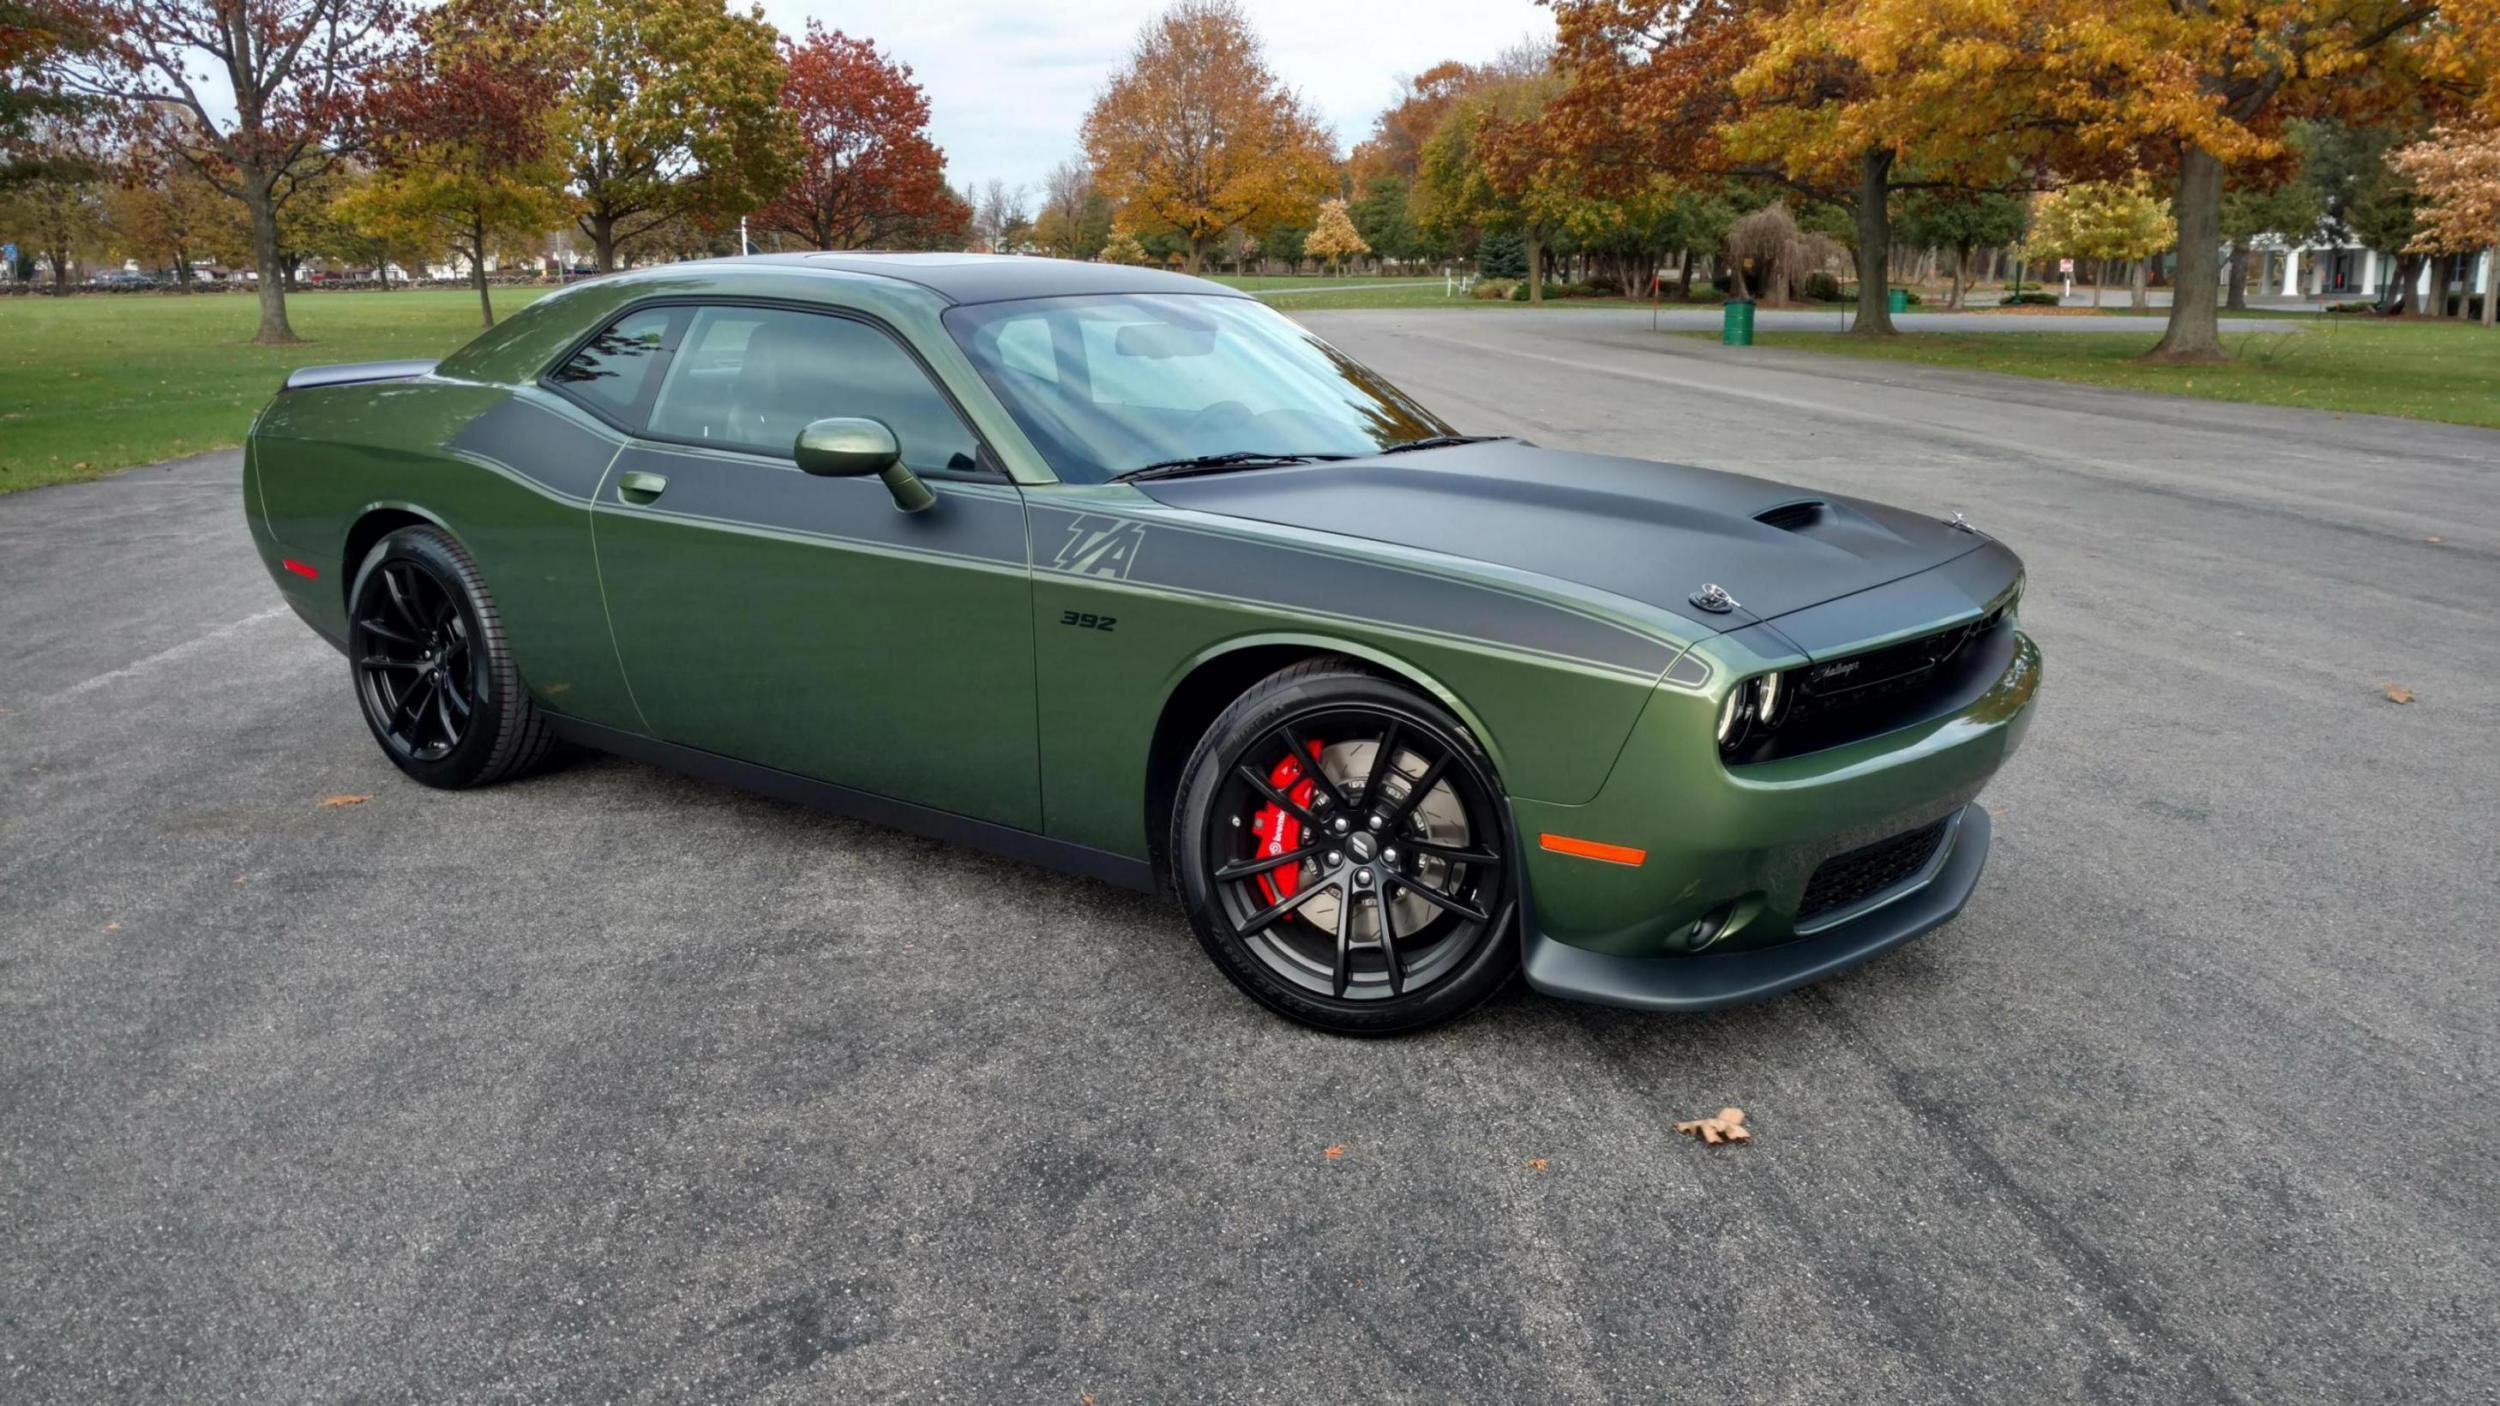 Image Result For 2018 Challenger Ta 392 F8 Green